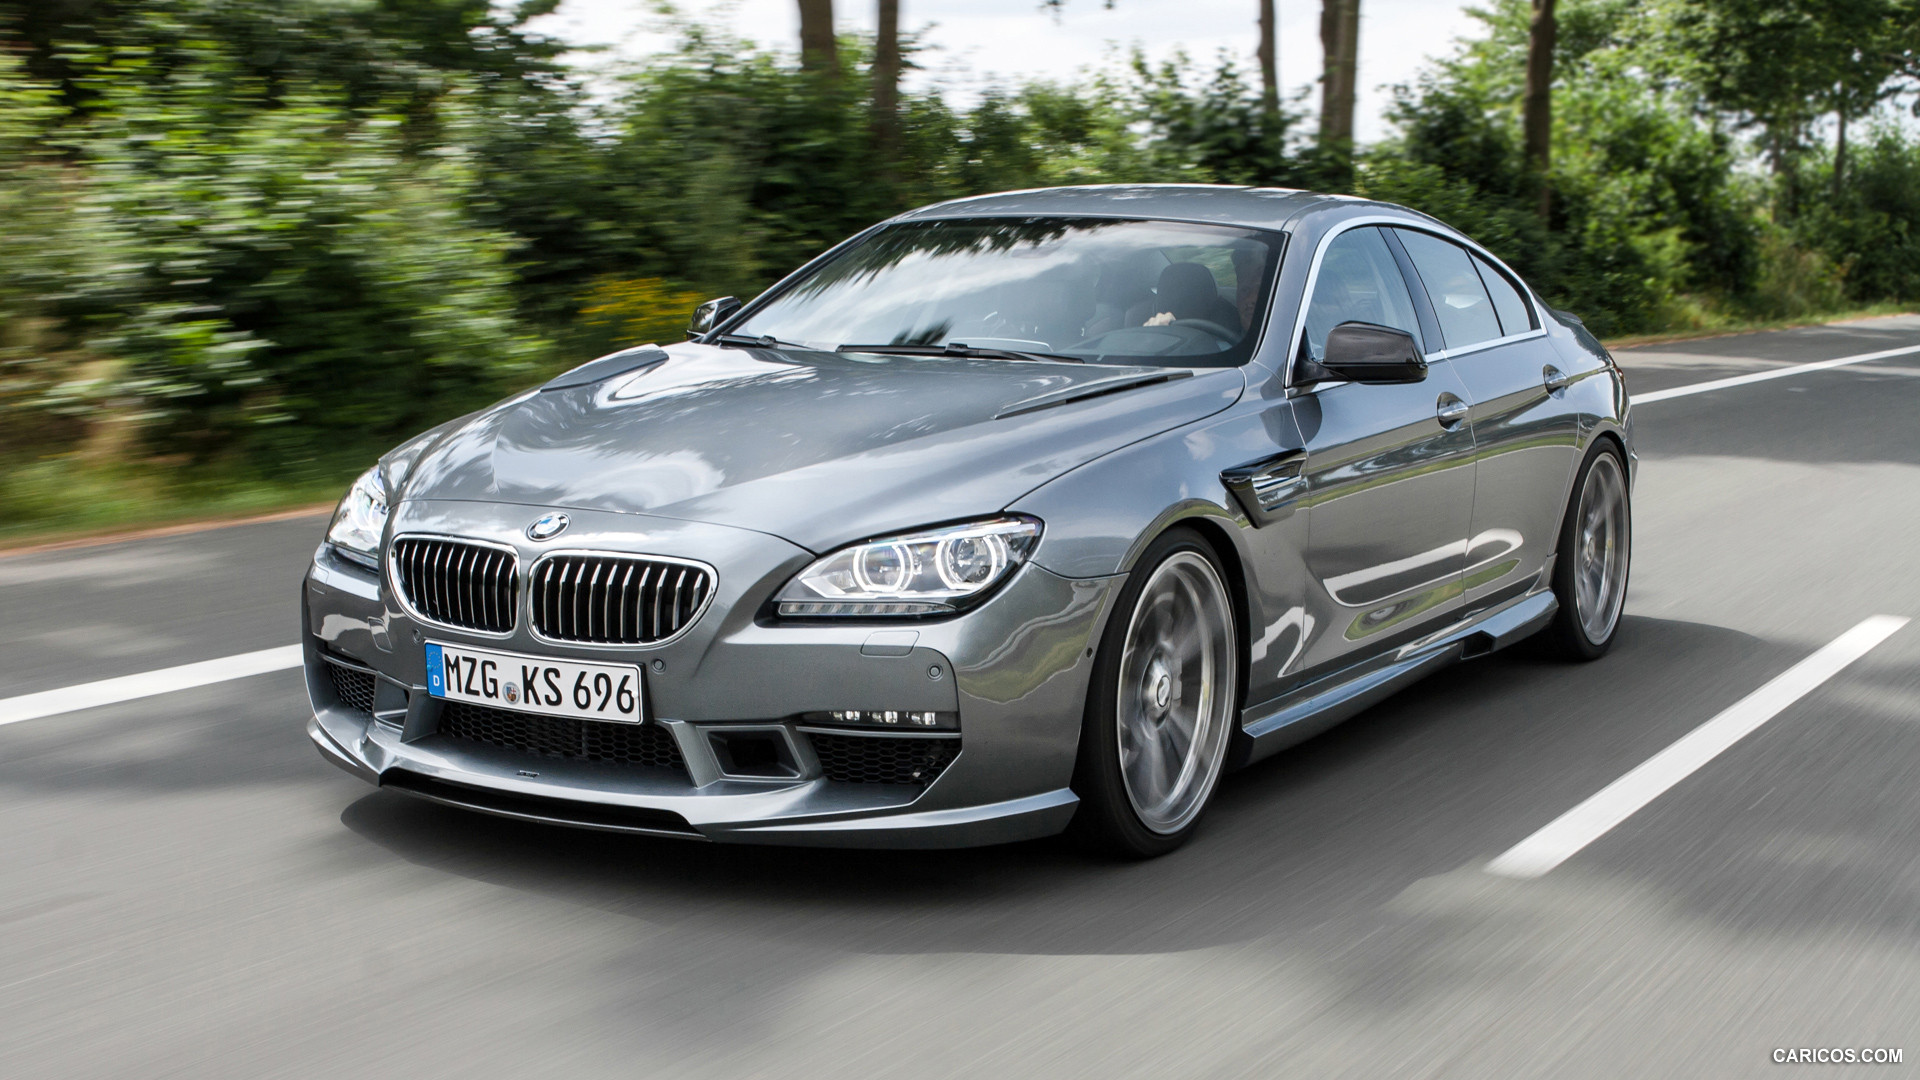 Bmw M6 0 60 >> Head To Head Shootout: M6 Gran Coupe vs Alpina B6 - Moto Networks